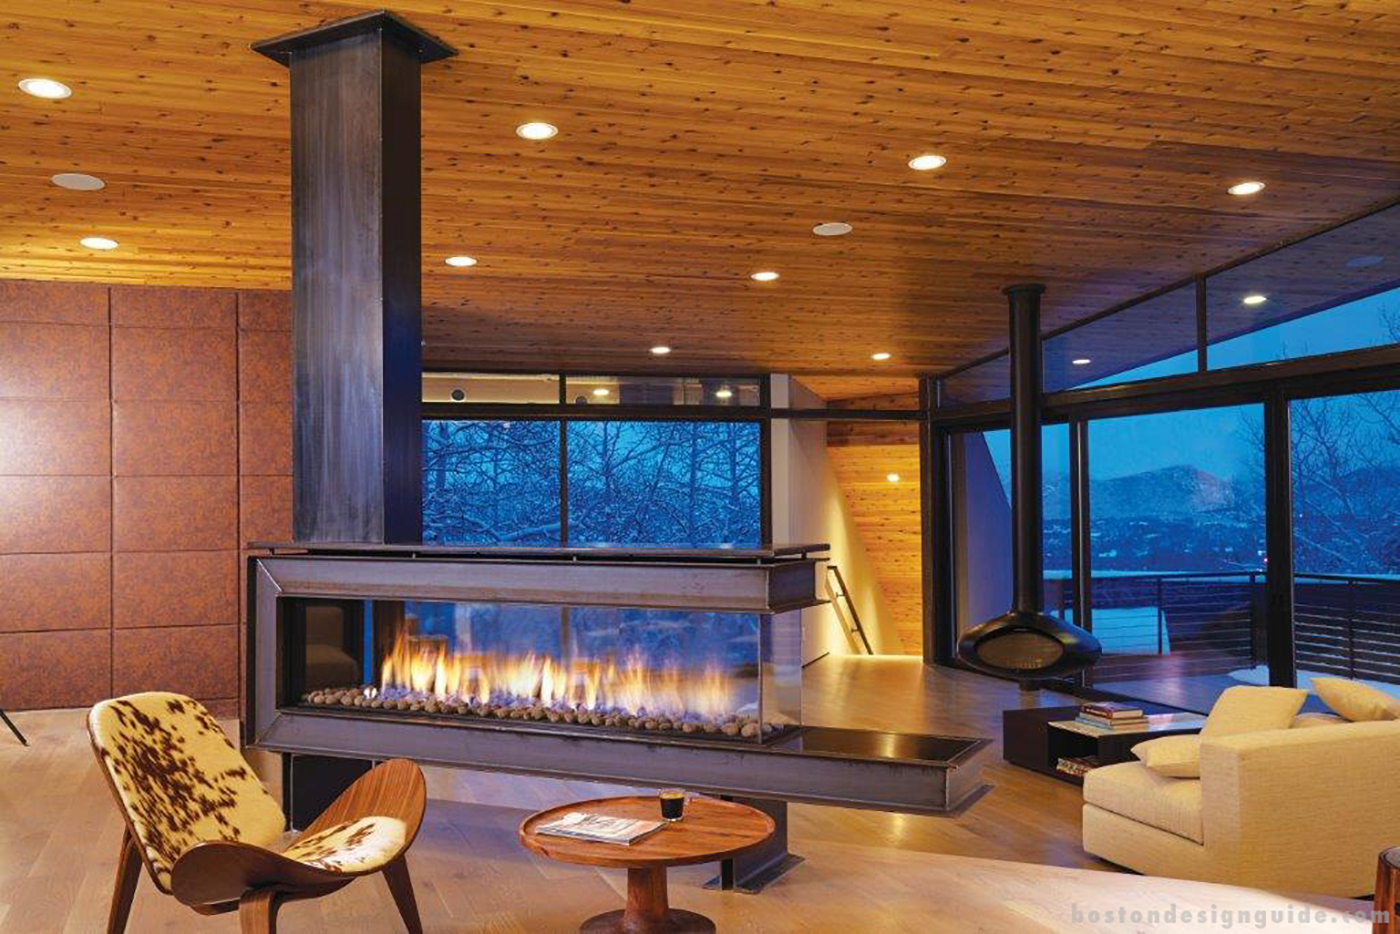 See-through glass fireplace